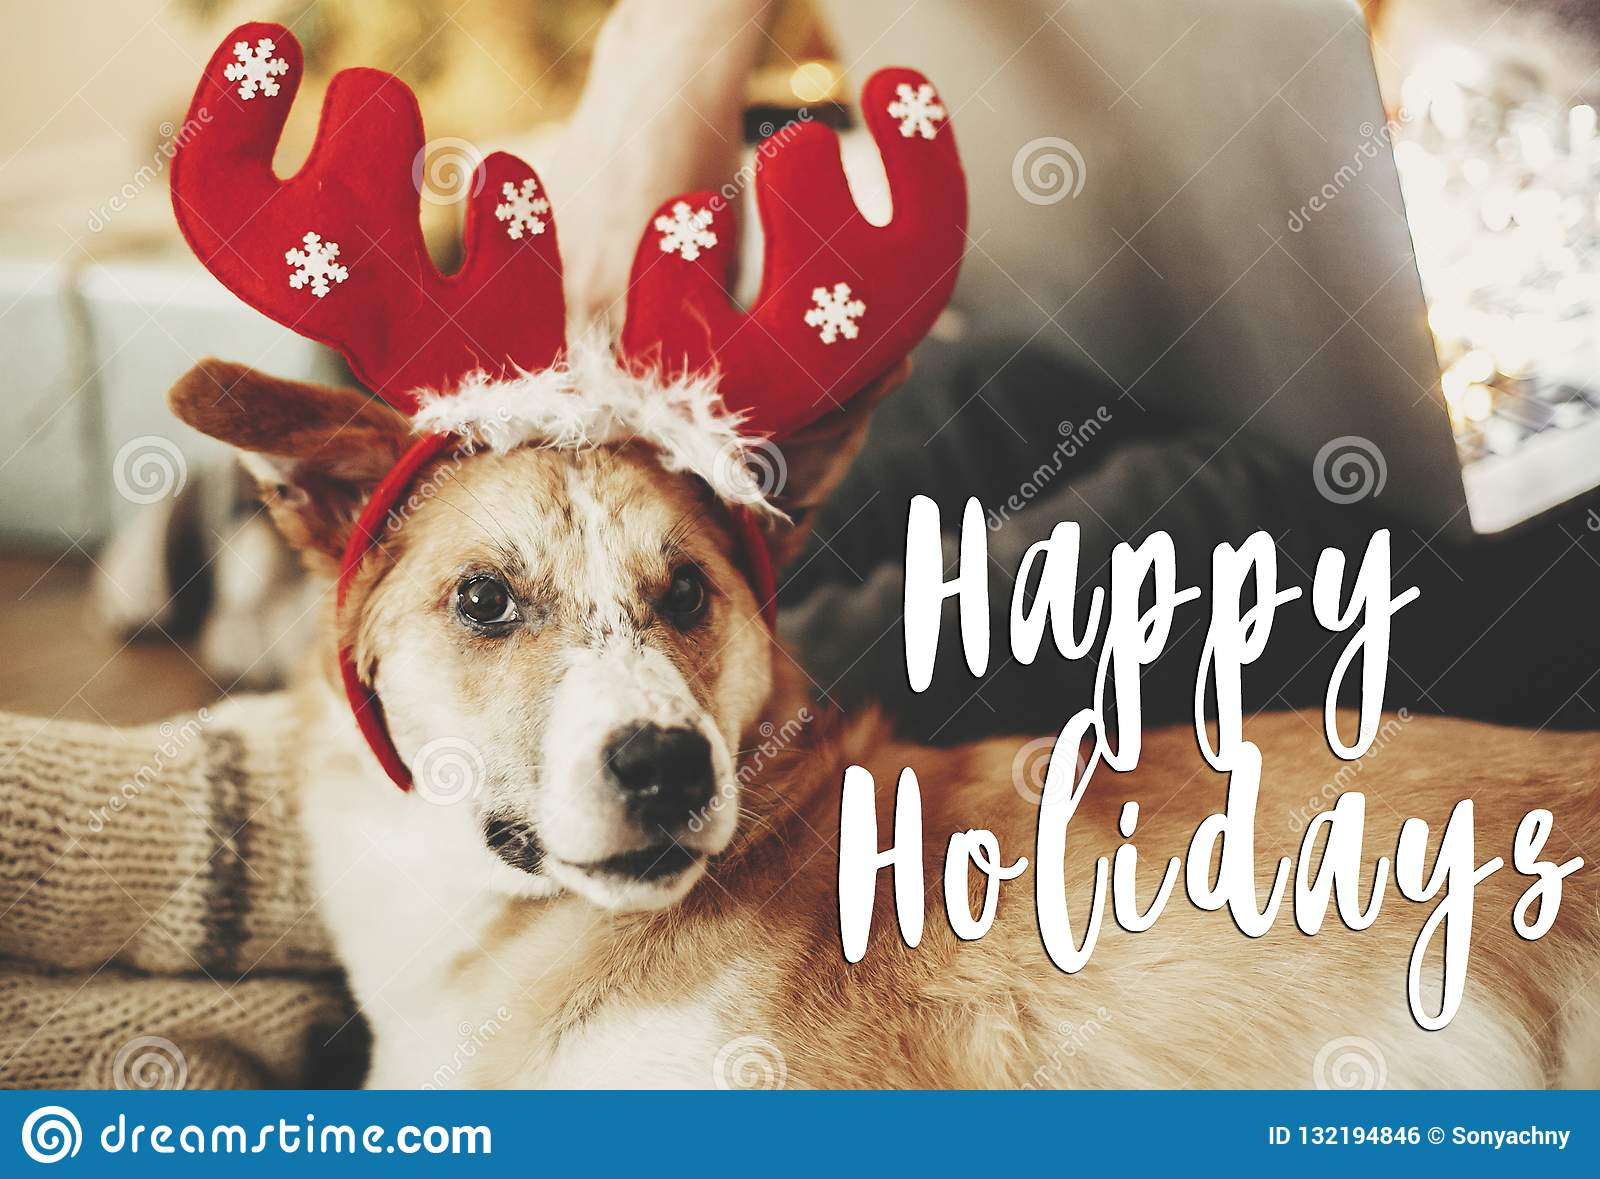 Happy Holidays Text On Dog With Reindeer Antlers Sitting At Owne Stock Photo Image Of Eyes Greetings 132194846